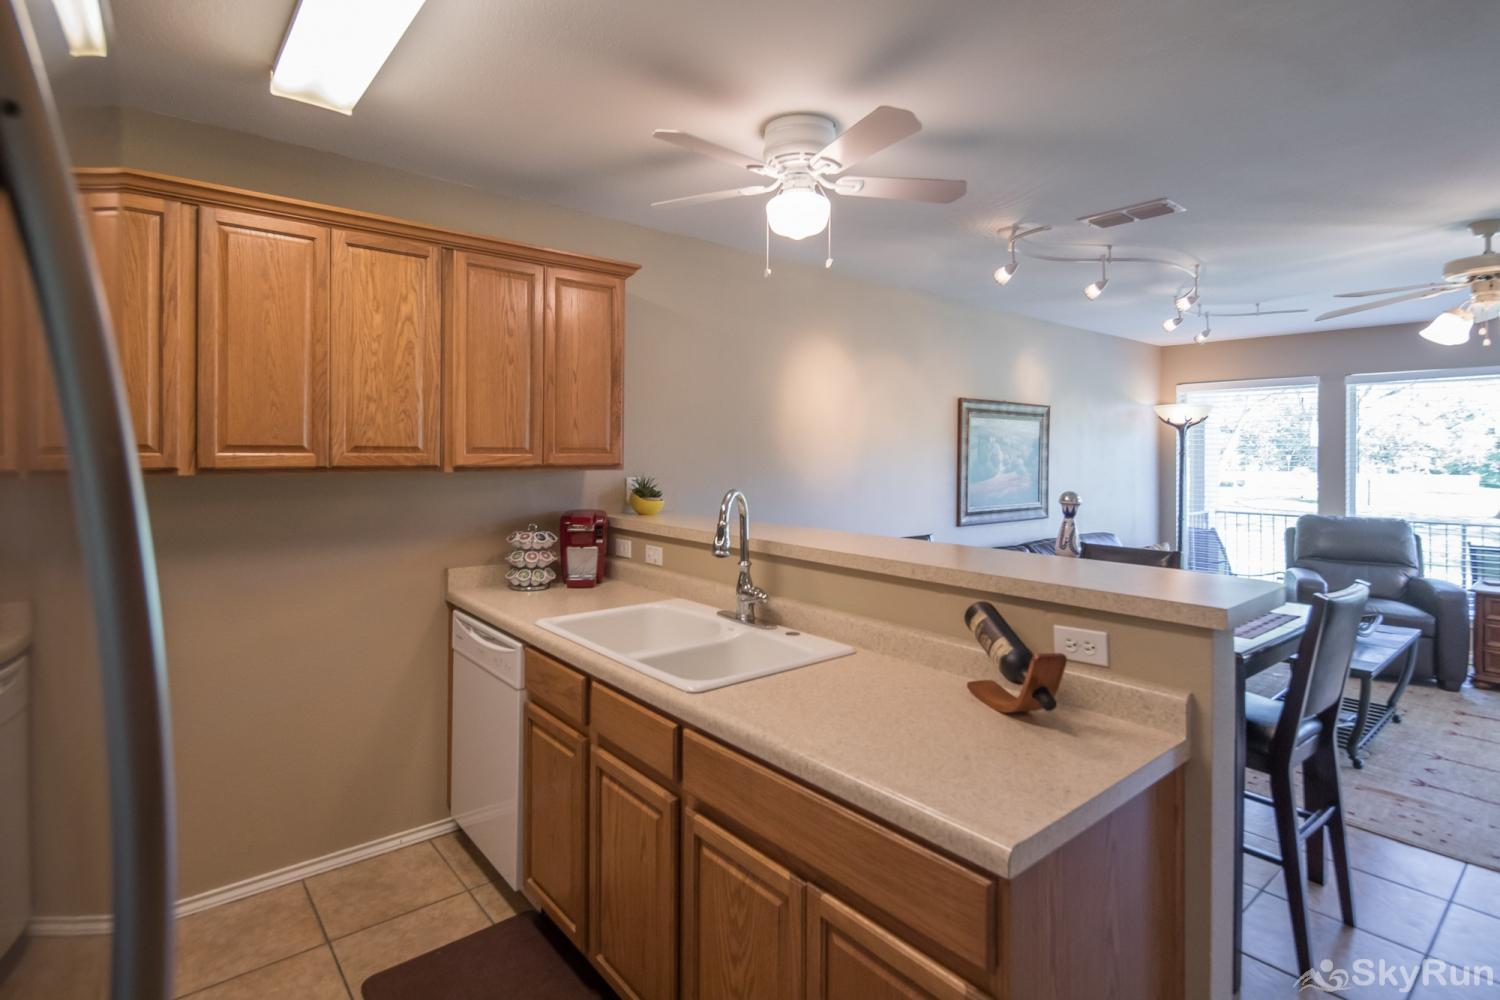 WATERWHEEL ESCAPE CONDO Kitchen Overlooking Living and Dining Areas